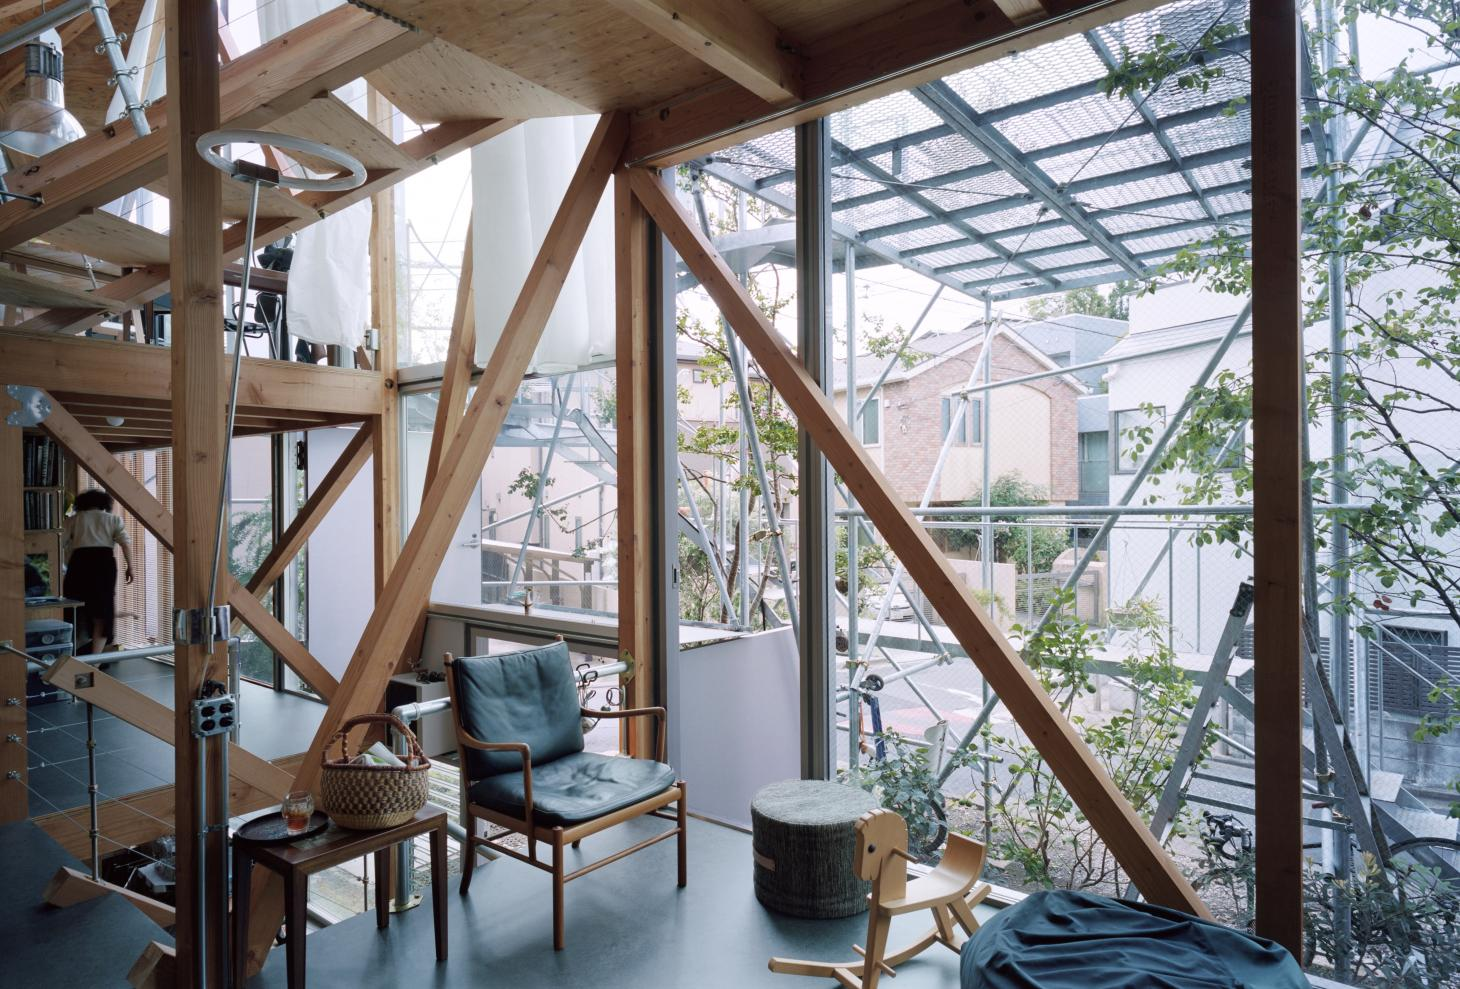 living space with large openings looking out at naked structure at Daita2019, a Japanese house